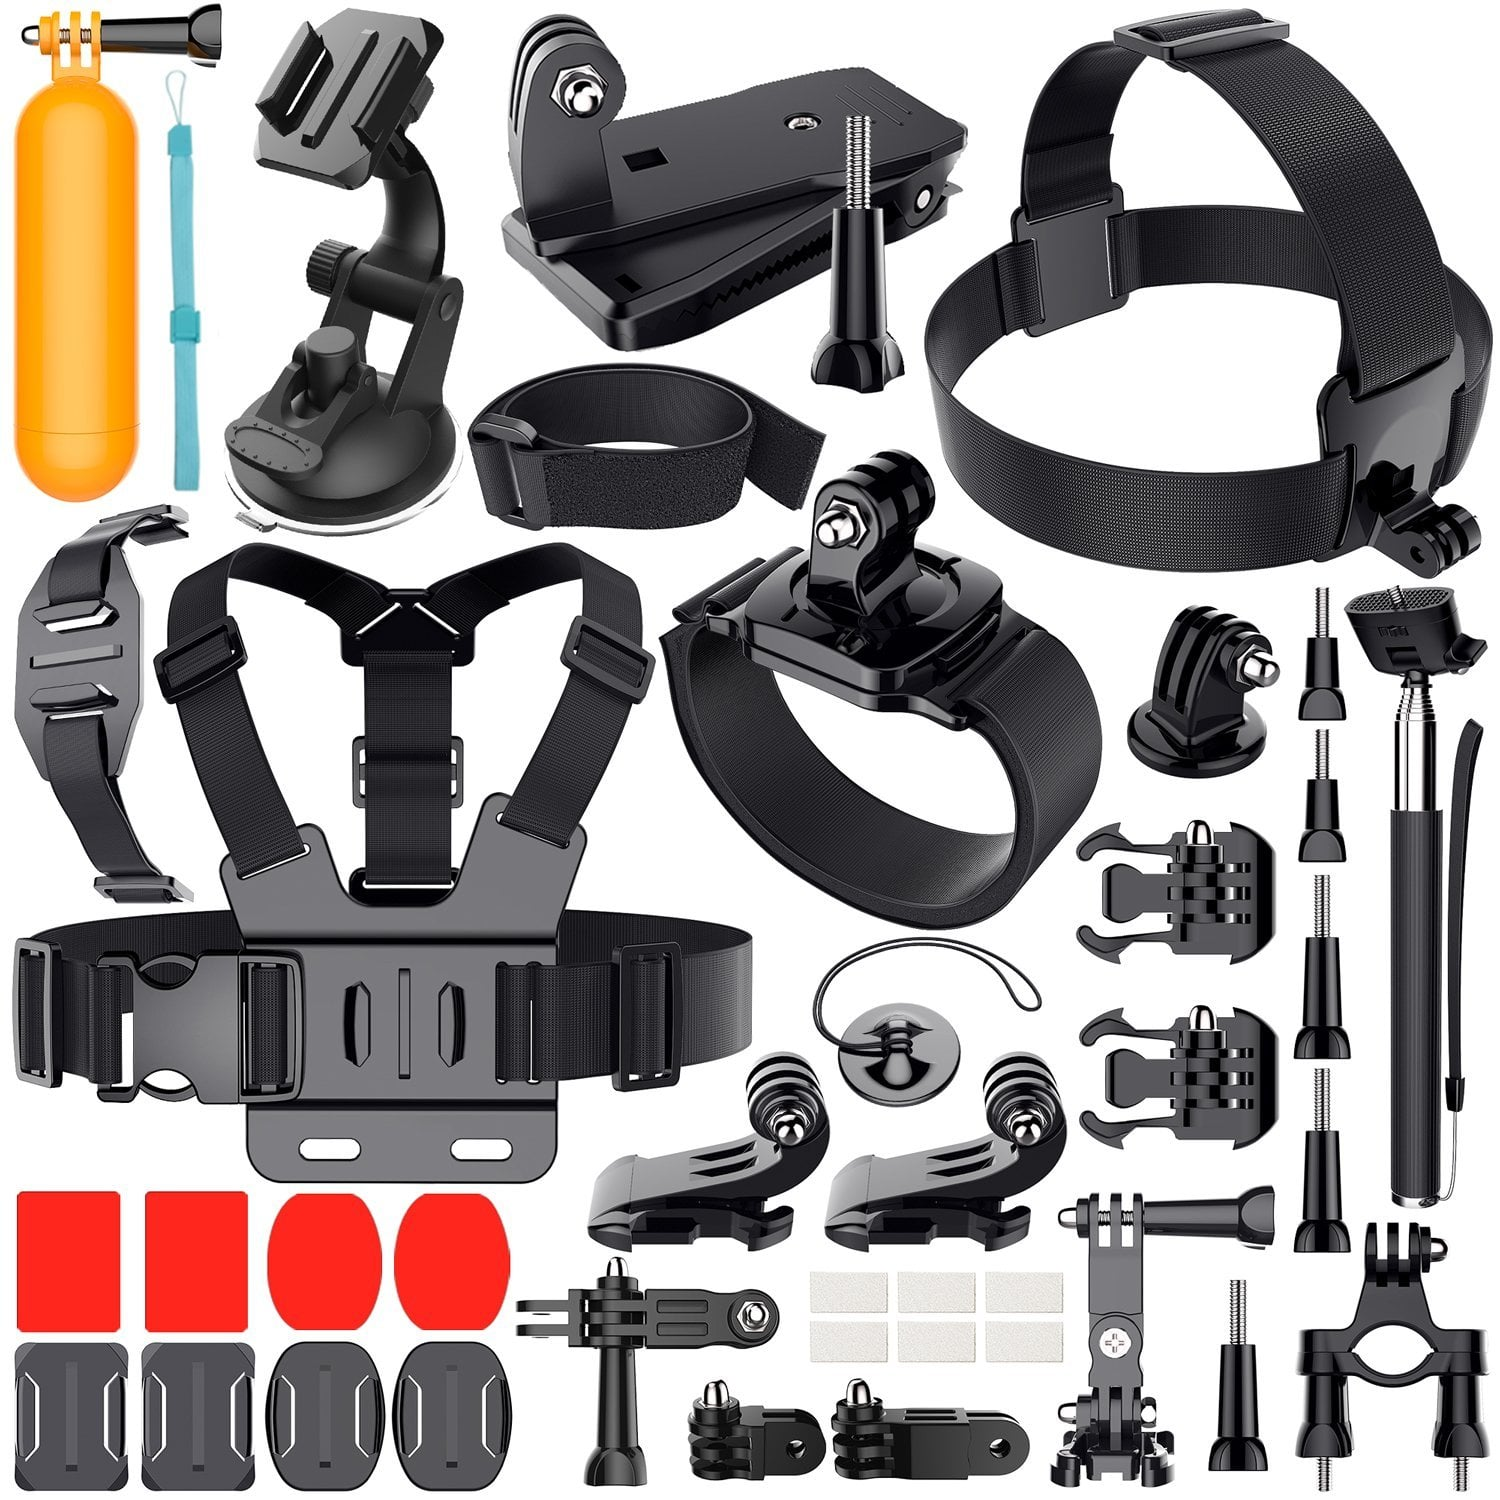 Outdoor Sports Combo Kit 40 accessories for GoPro HERO and other Action cameras $8.49 Free ship for PRIME @ Amazon